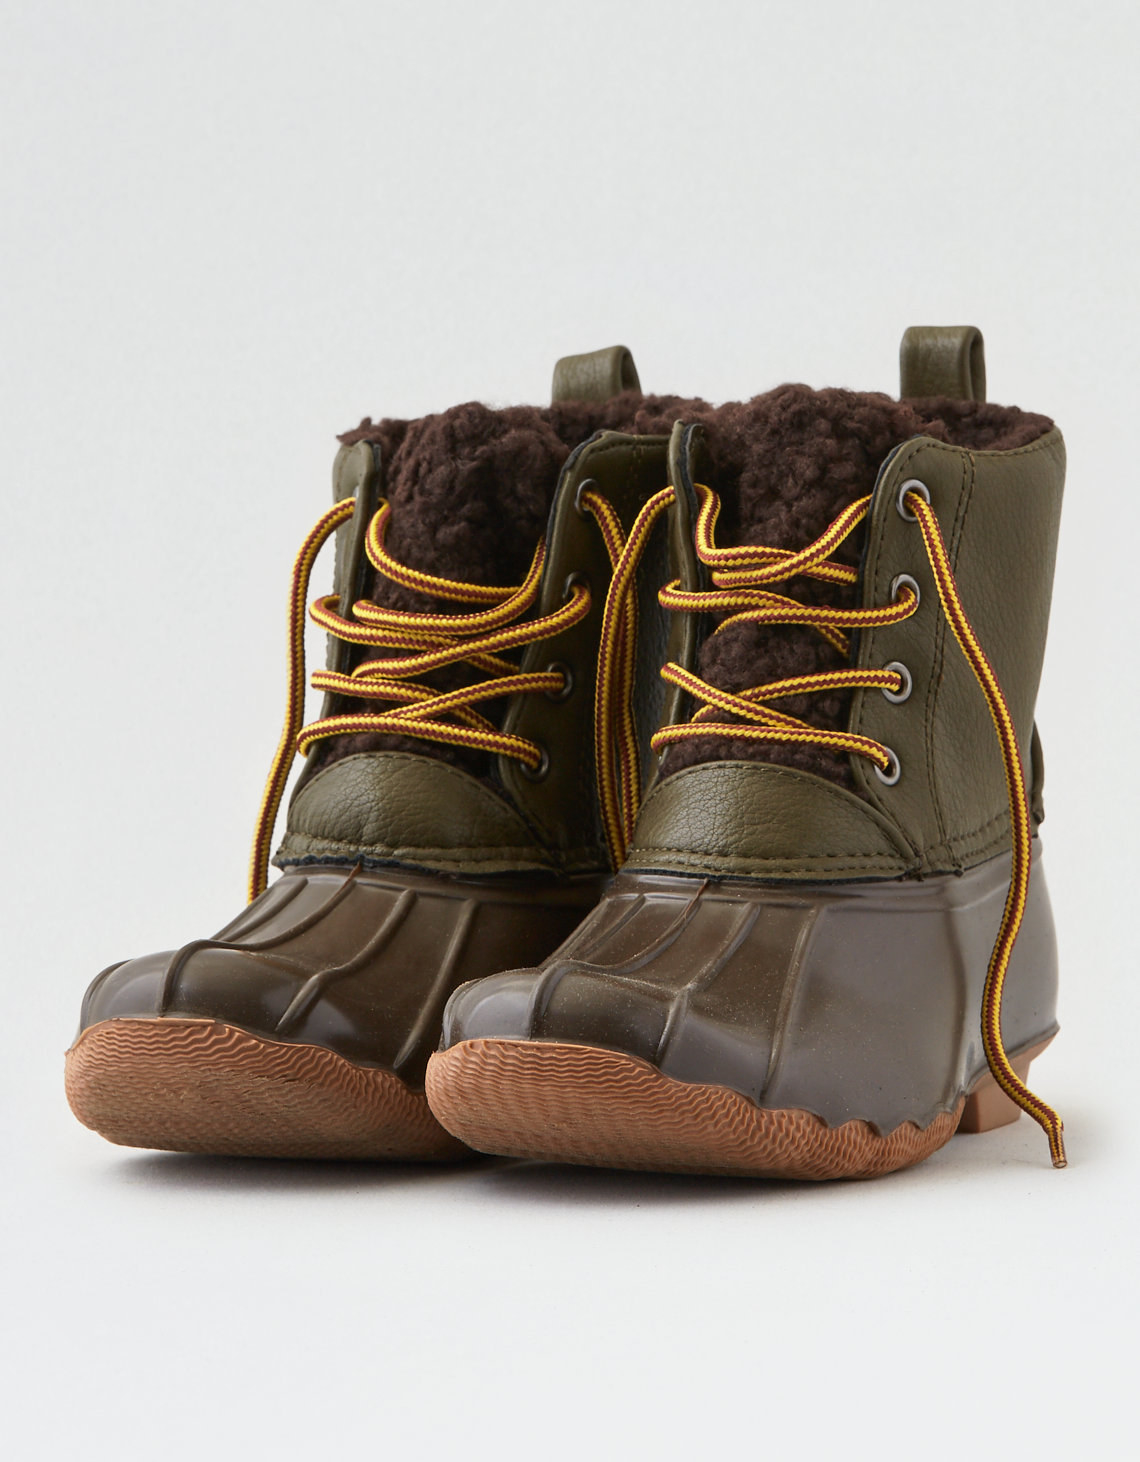 the duck boots in brown and olive green with yellow laces